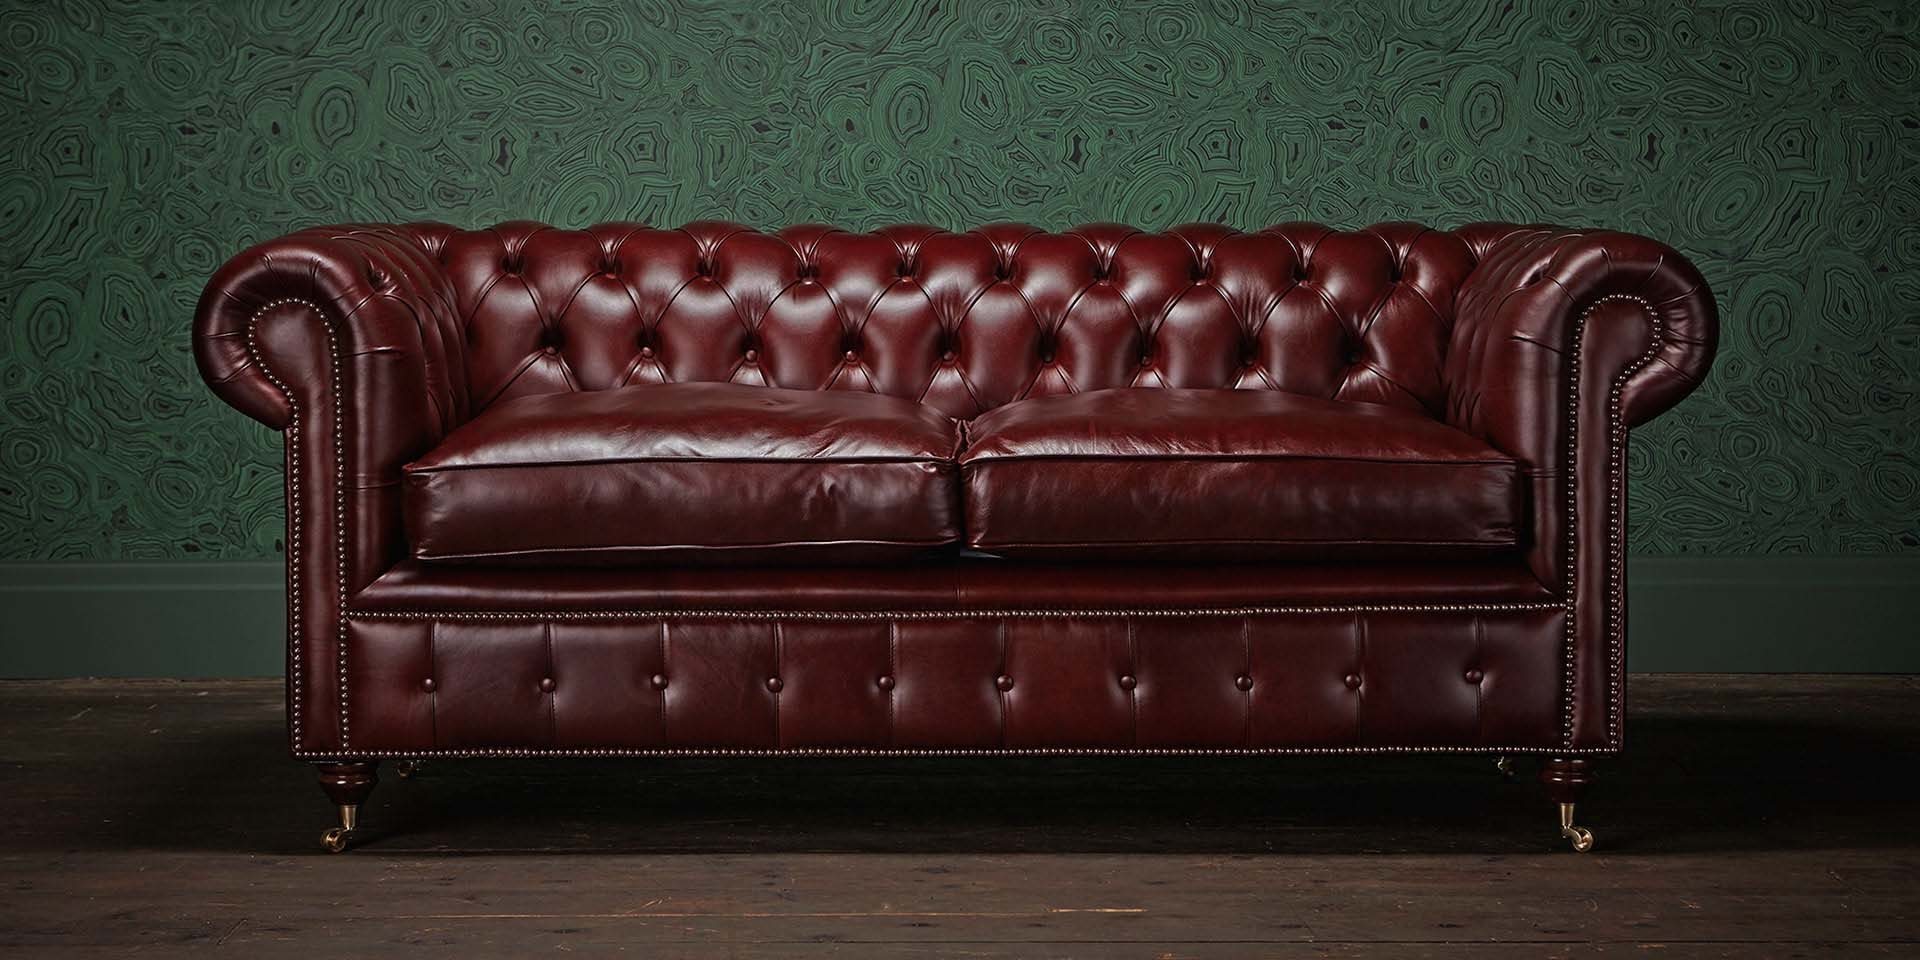 Chesterfields Of England The Original Chesterfield Company Throughout Chesterfield Sofa And Chair (View 9 of 15)